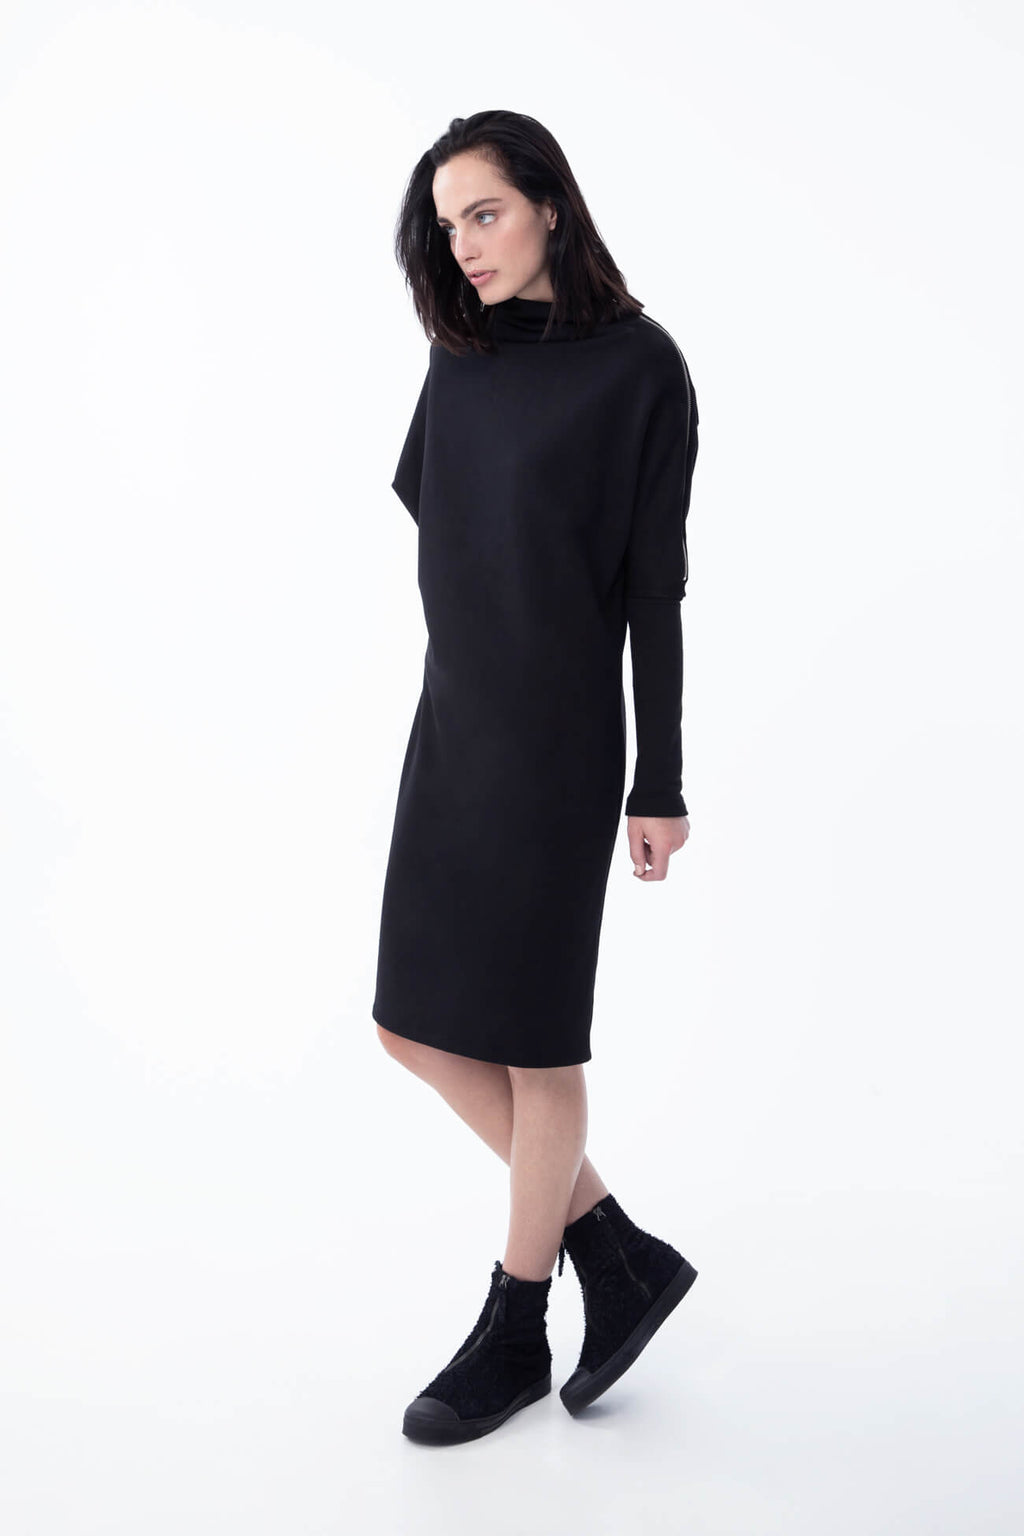 Marcellamoda-Black-Batwing-Sweater-Dress #Black D